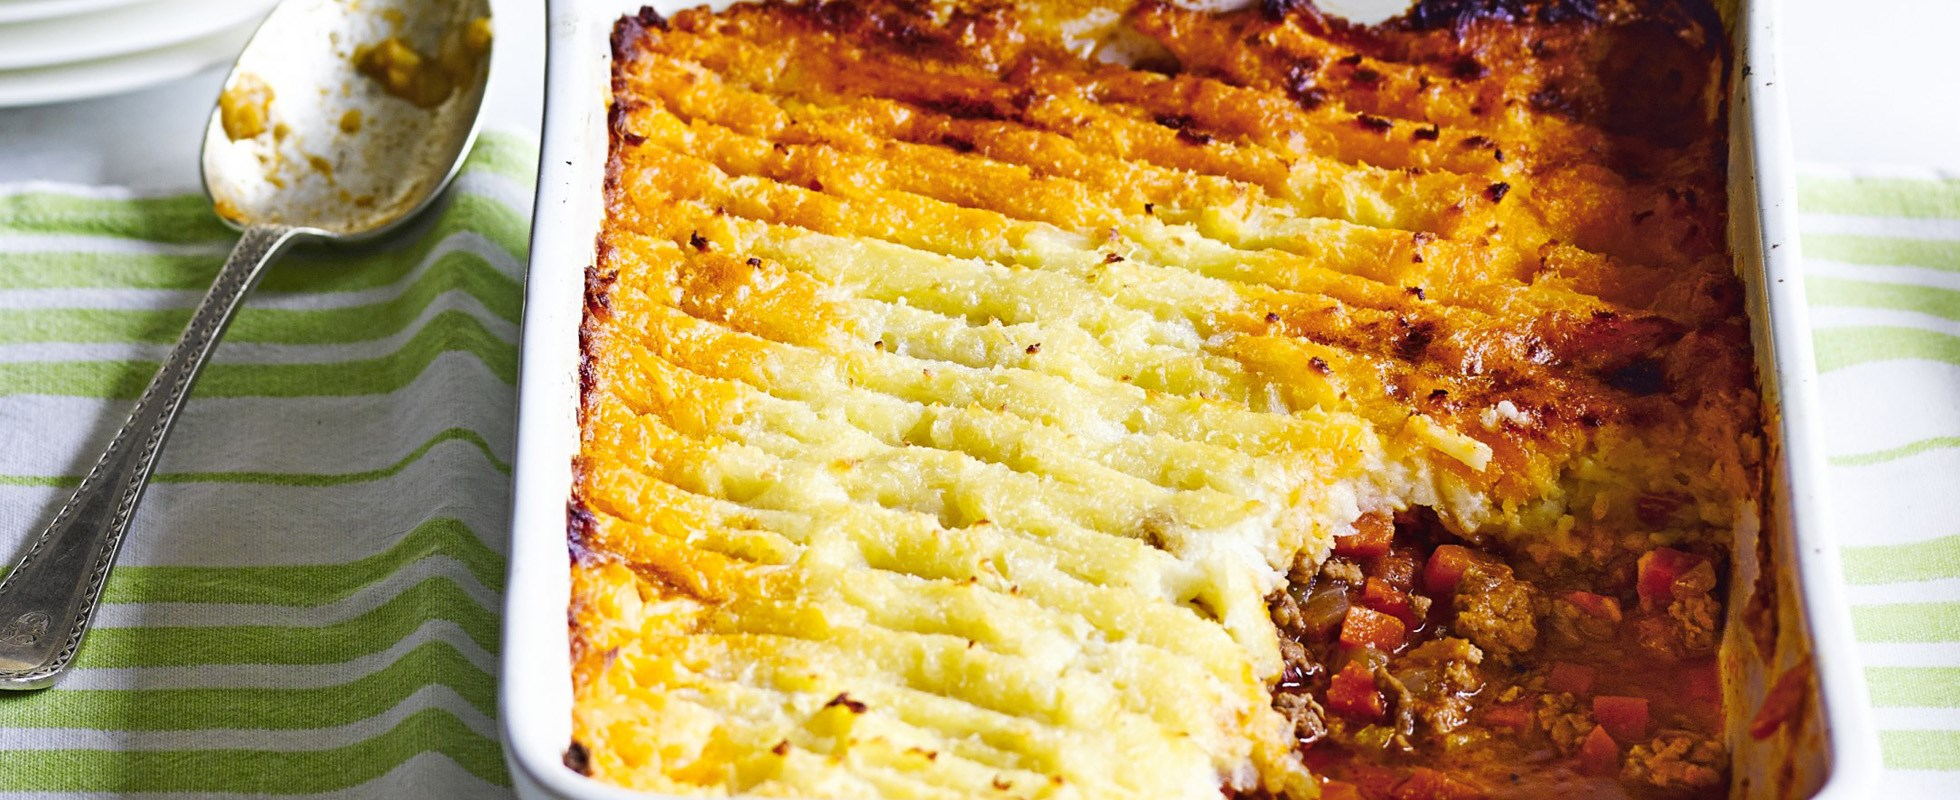 Shepherds pie originalrezept